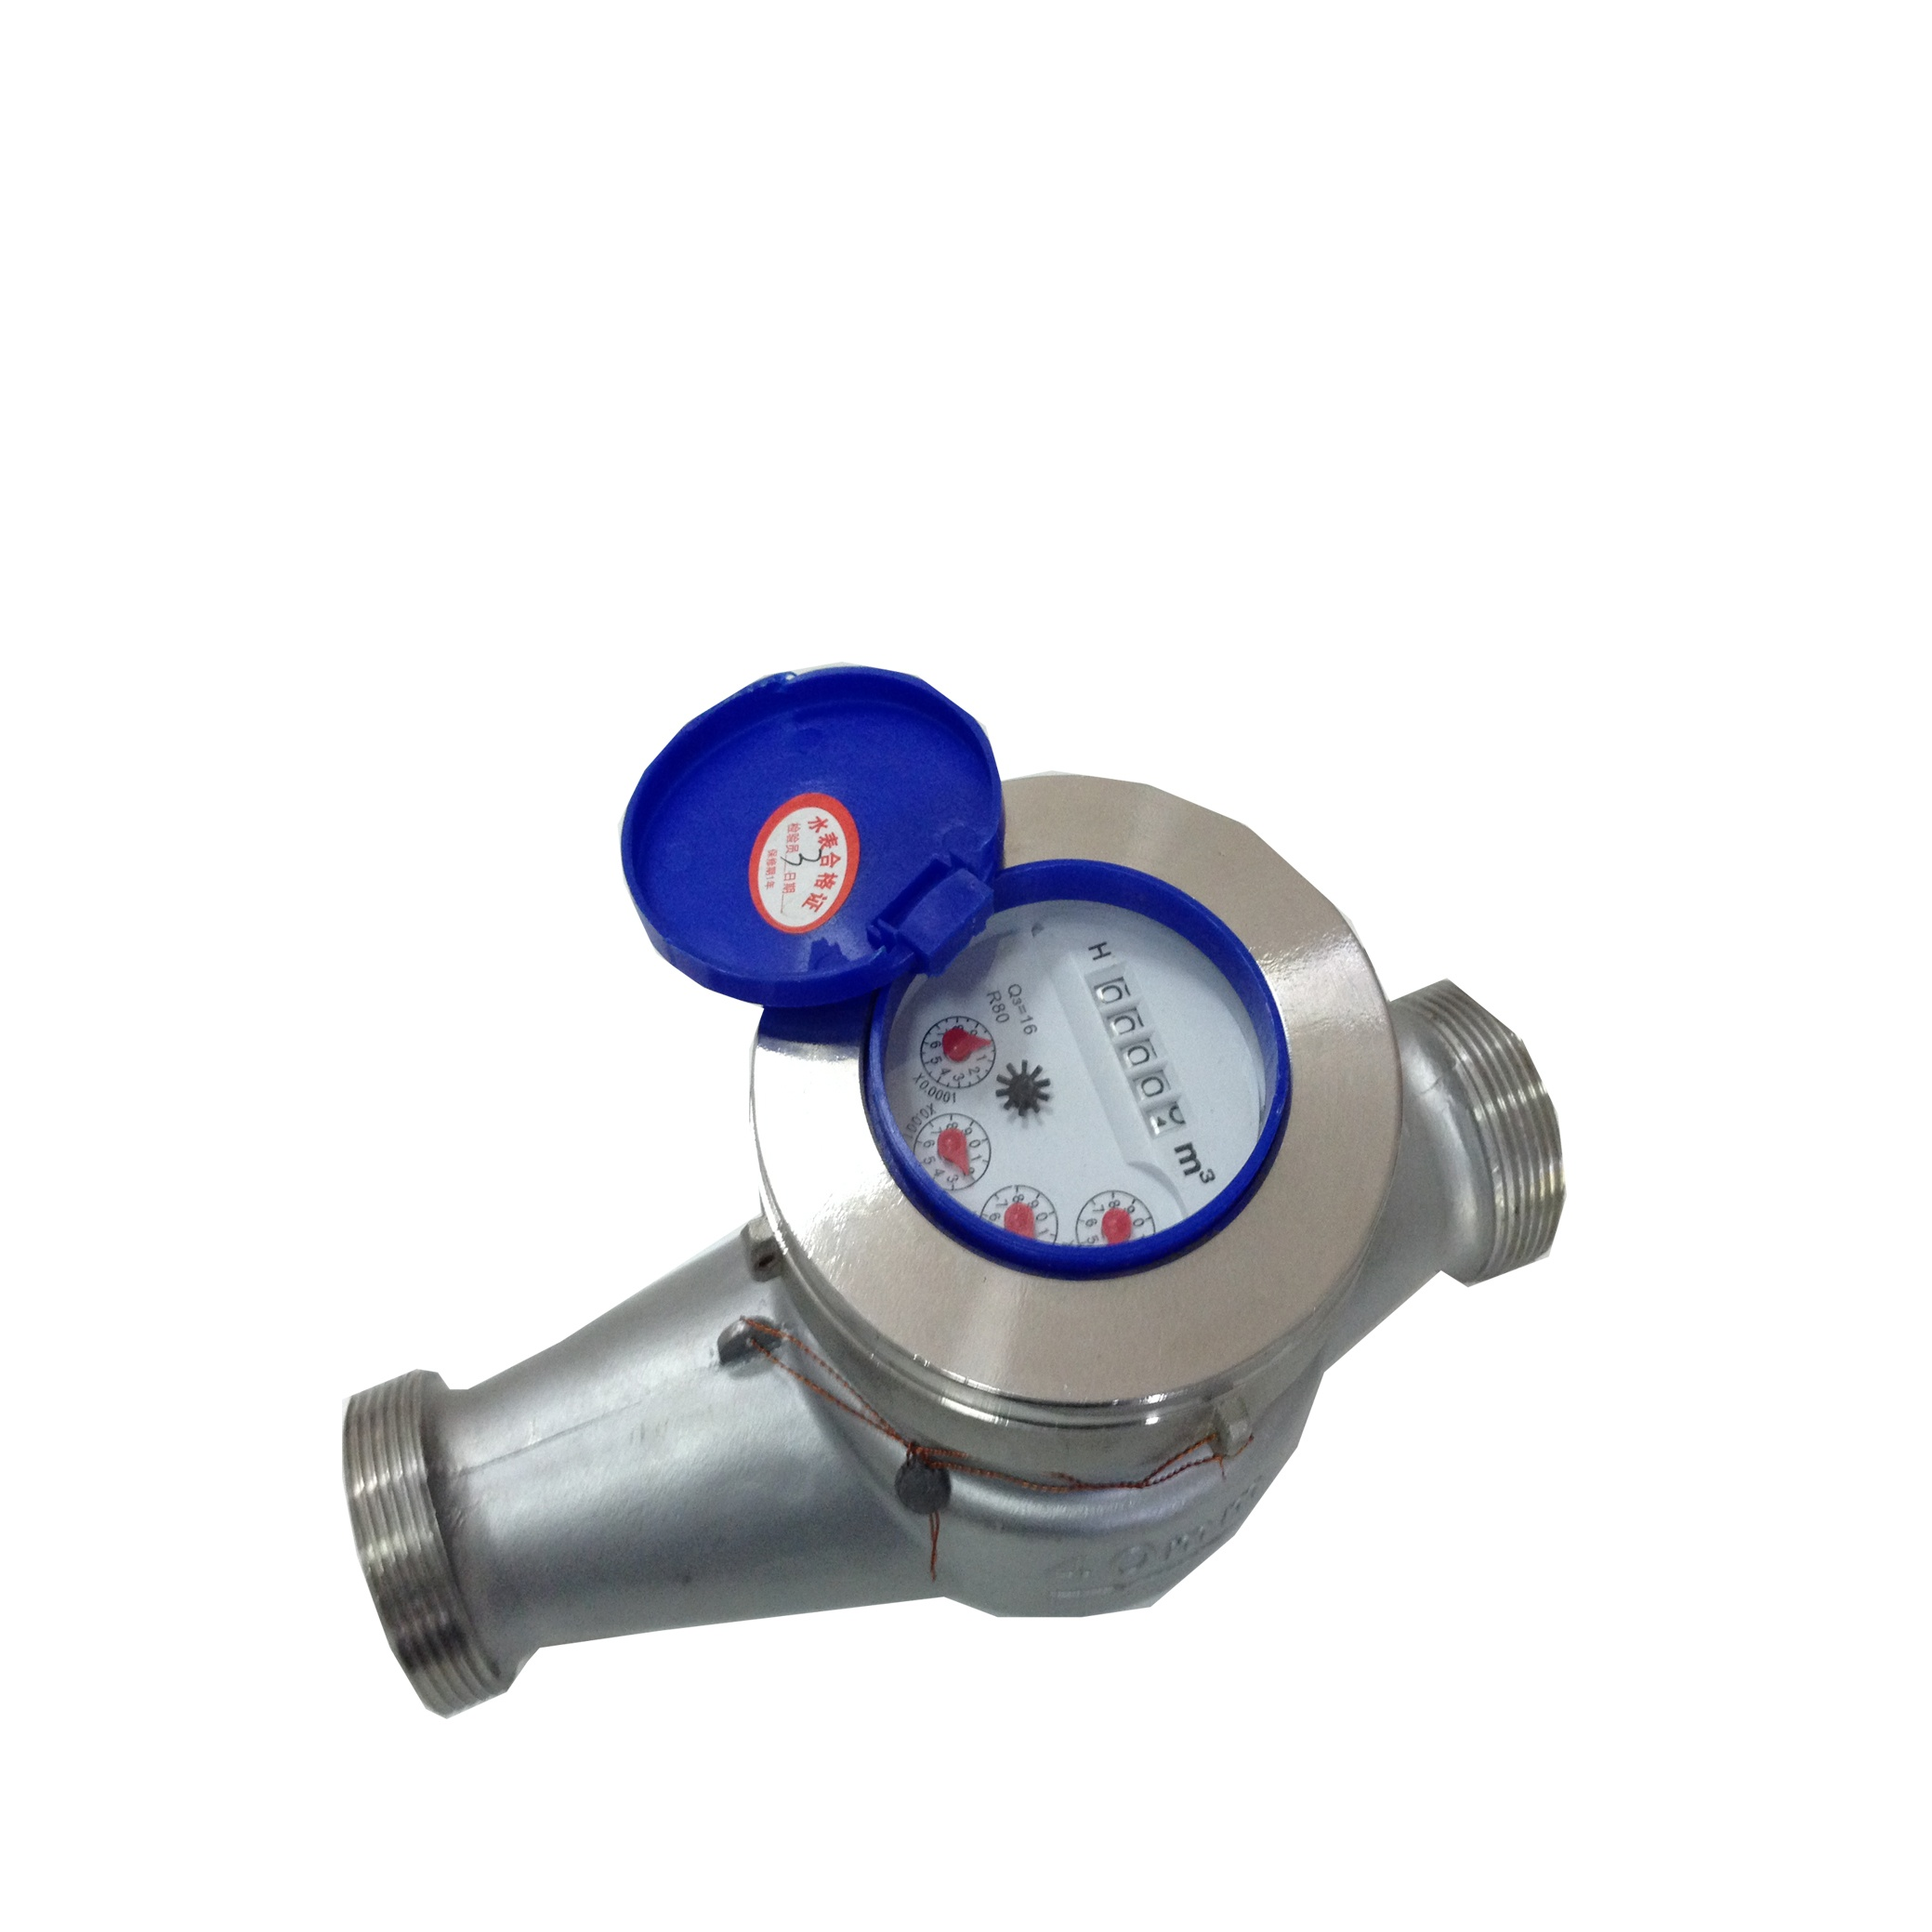 Stainless 304 Multi-jet Water Meter (Threaded End) / มิเตอร์น้ำสแตนเลส